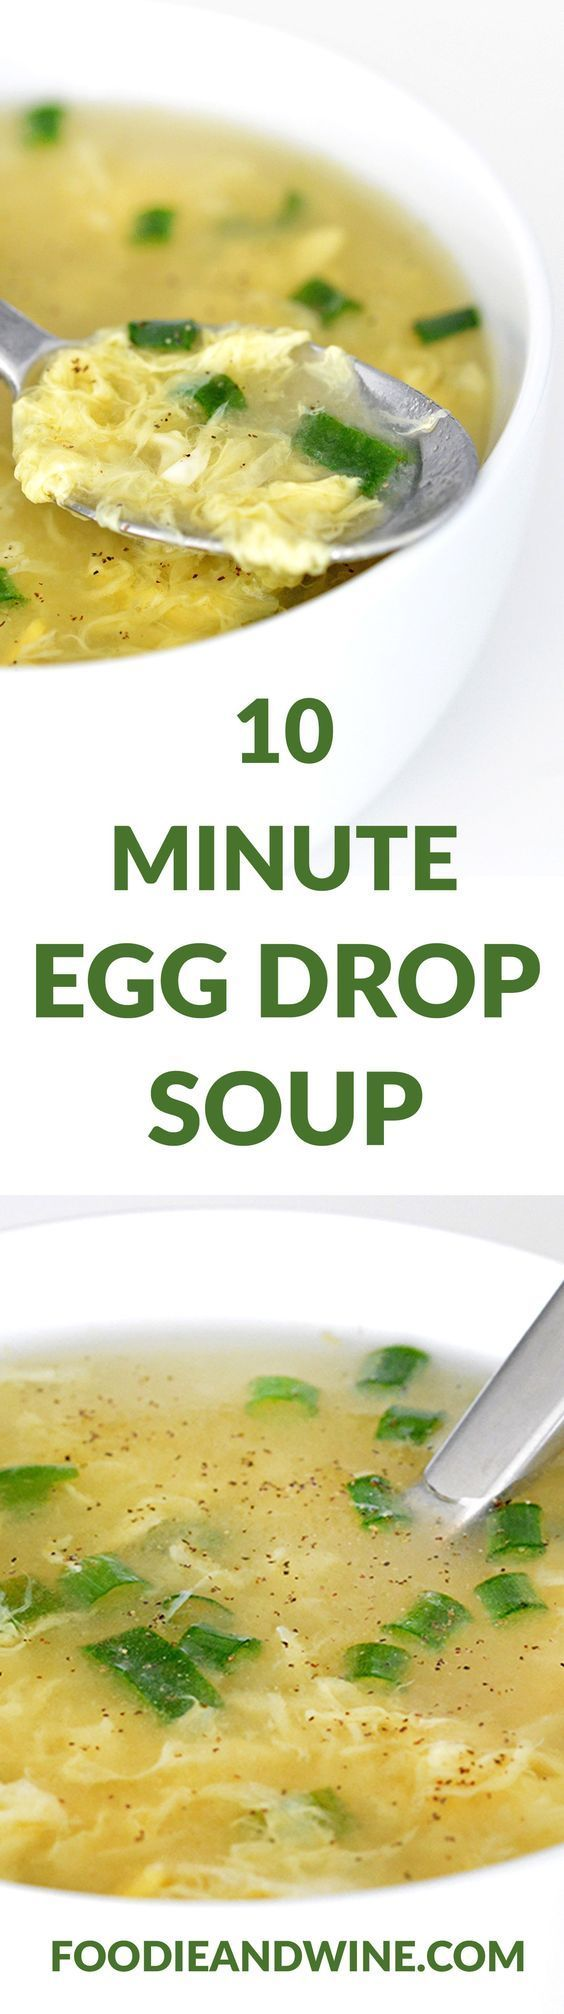 10 Minute Egg Drop Soup Recipe! This Chinese Food Recipe is quick, easy and loaded with flavor. Pairs nicely with Fried Rice our other Asian Recipes. This can easily adapt to a vegetarian recipe. Click to see more Soup Recipes! #chinesefoodrecipes